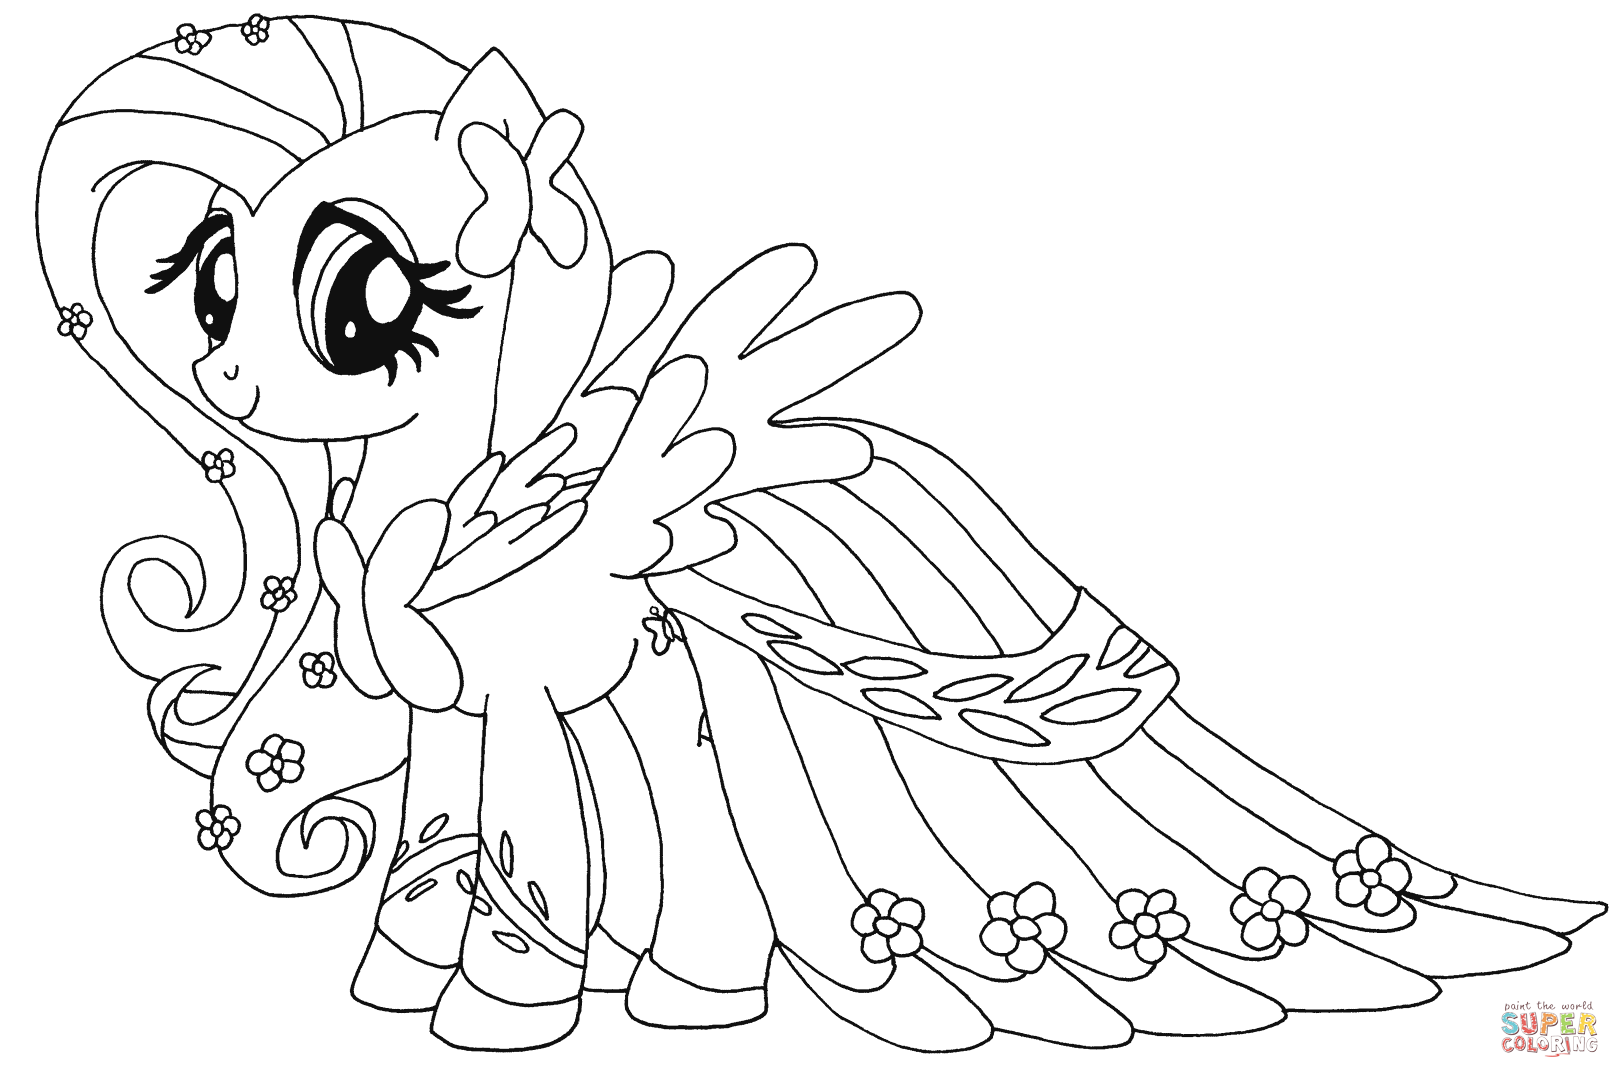 Hard My Little Pony Coloring Pages : Fluttershy from my little pony coloring page